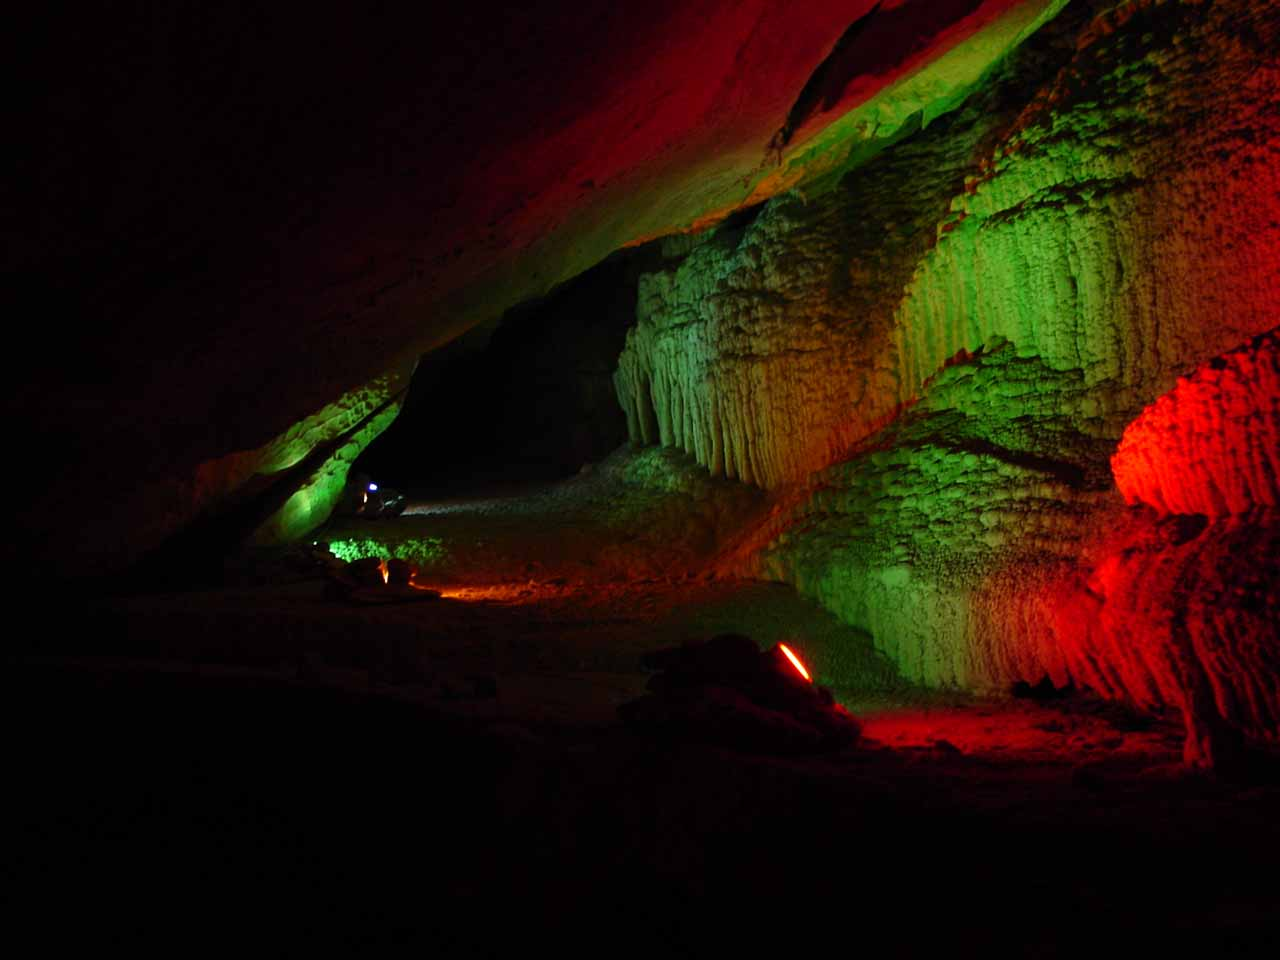 The colorfully lit interior of Boyden Cavern near Grizzly Falls